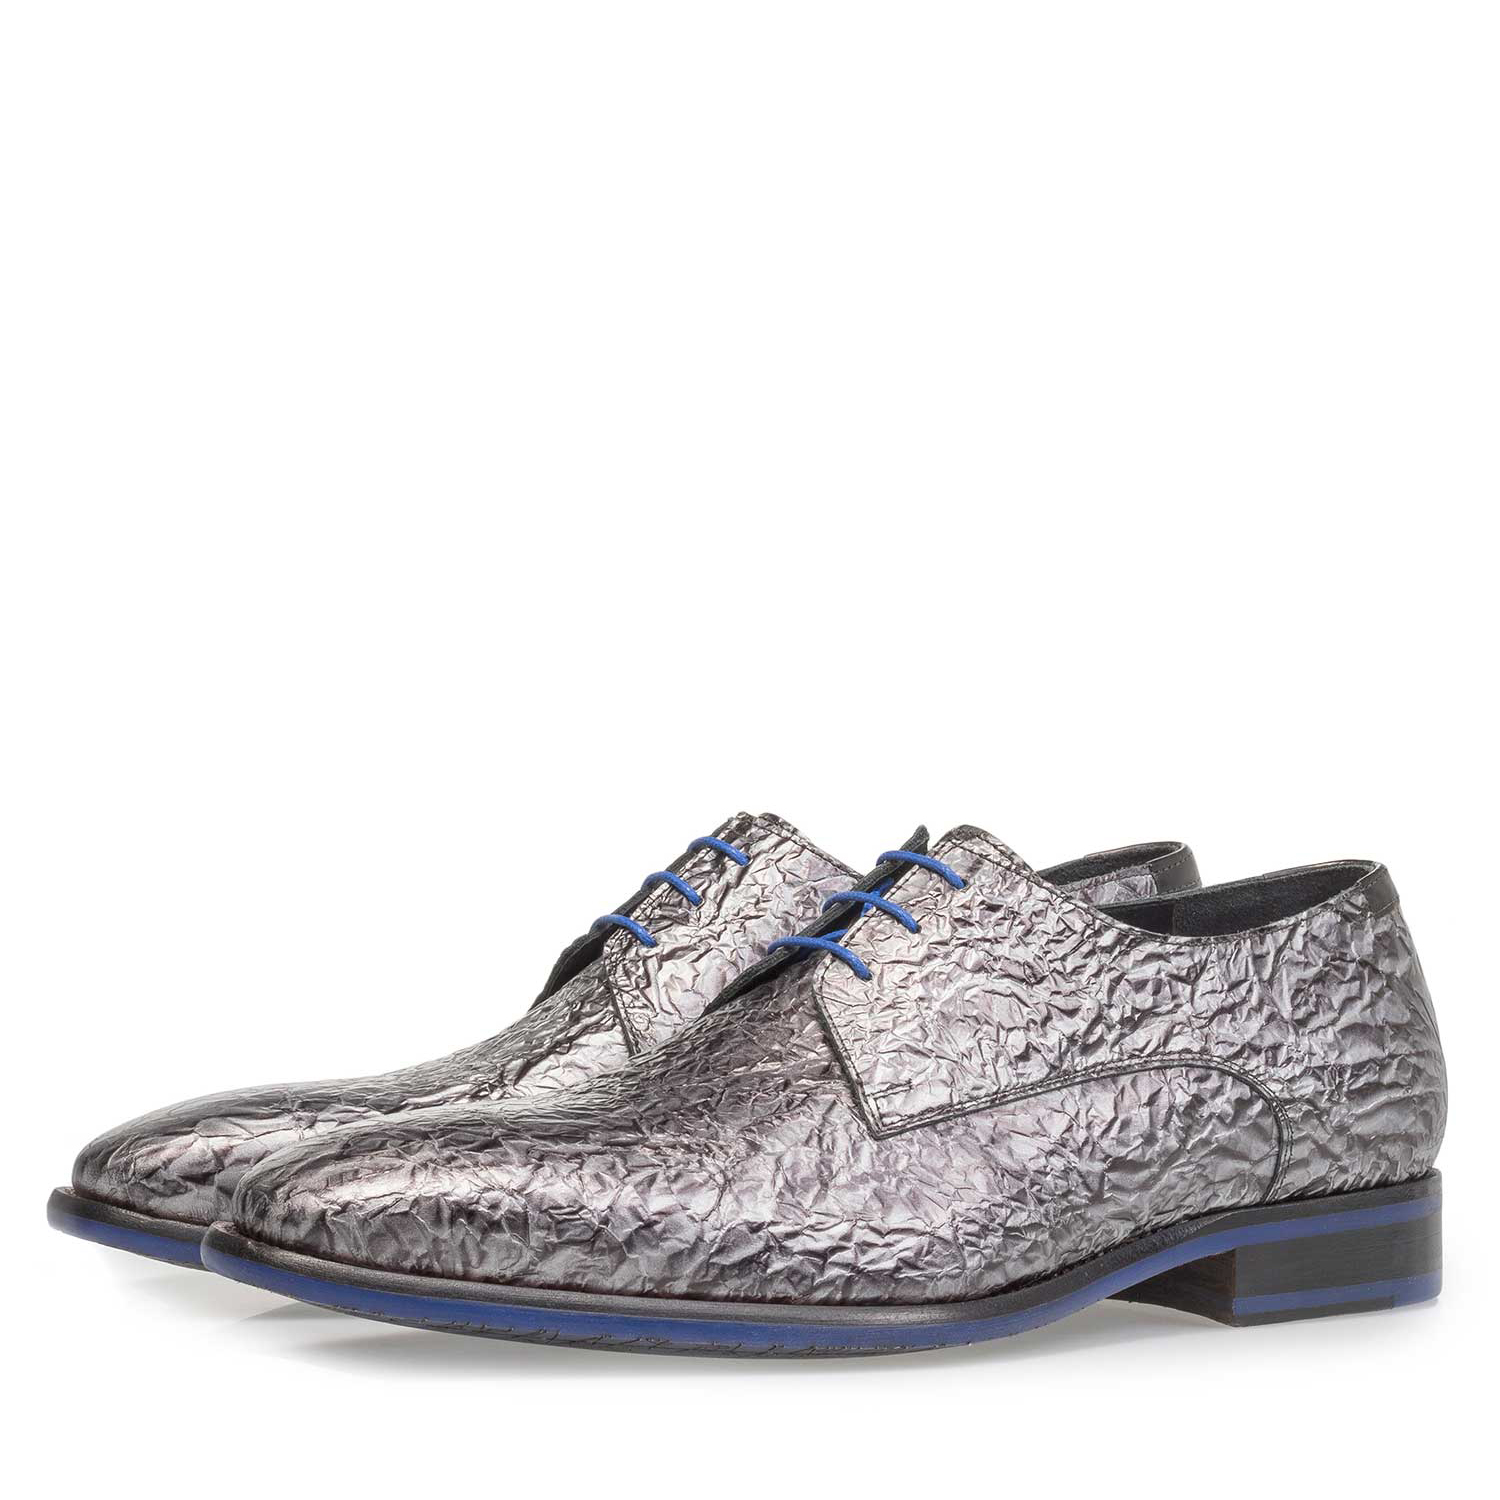 18097/06 - Premium dark grey printed patent leather lace shoe